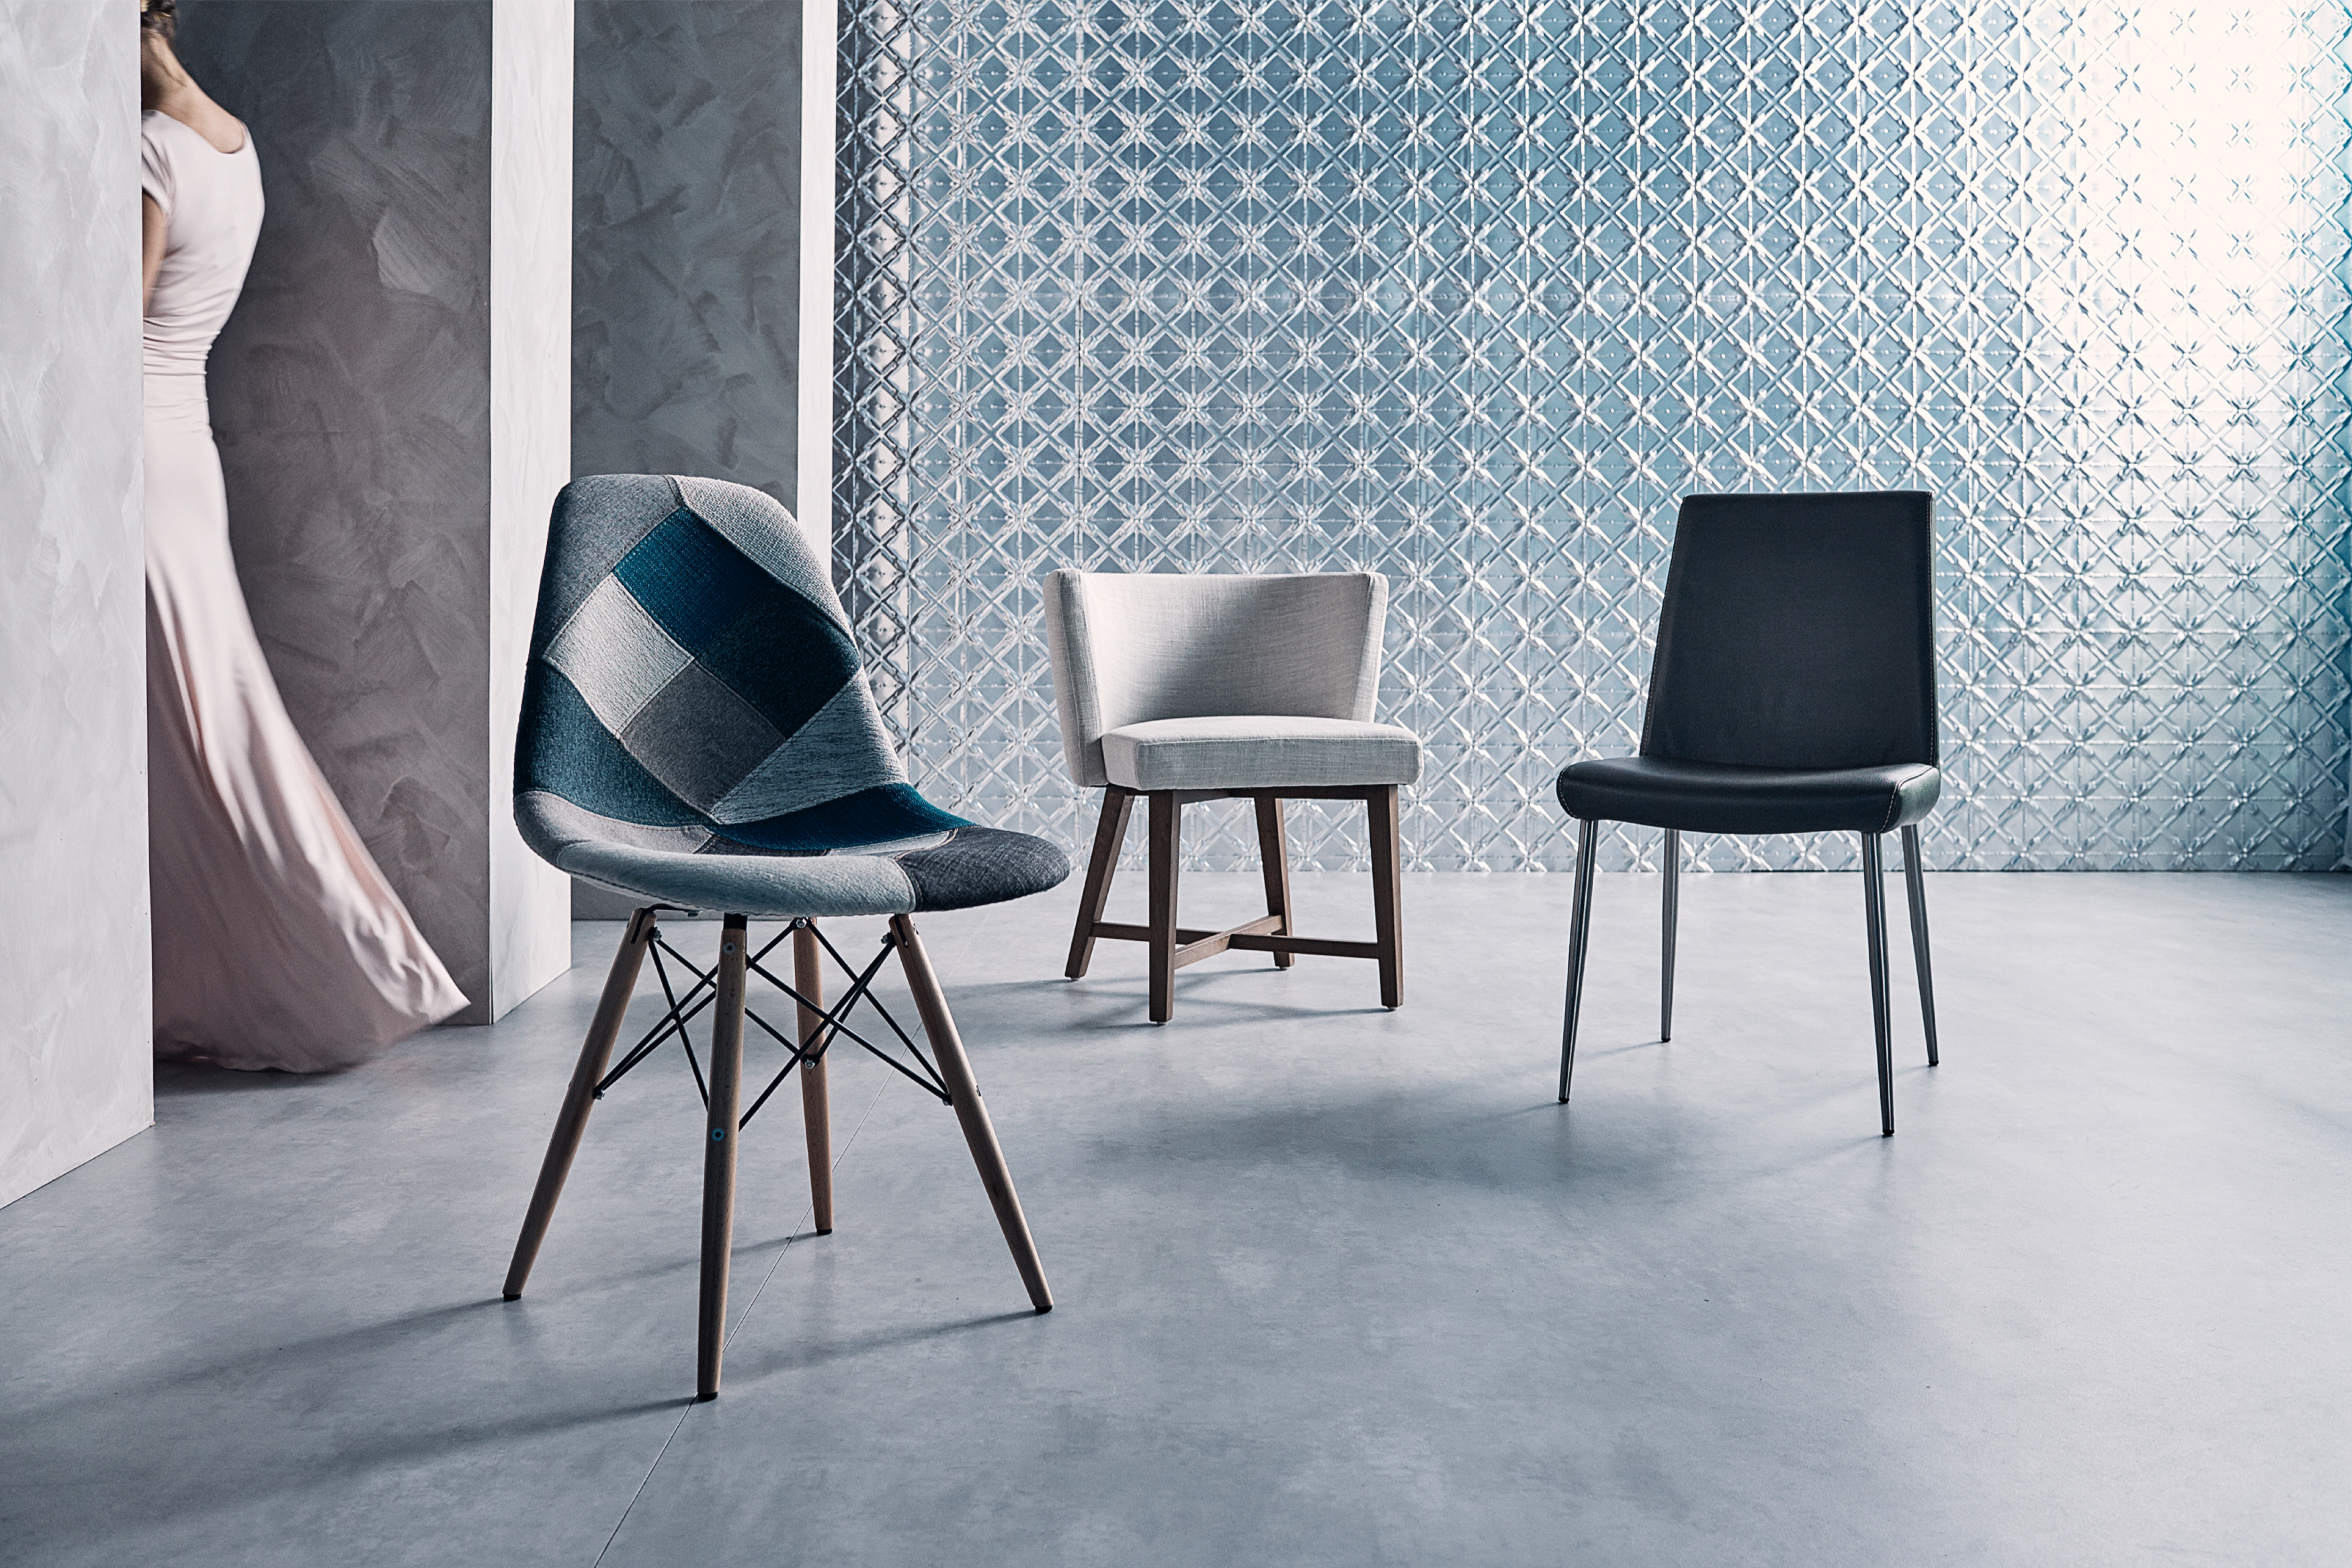 7.15_CHAIRS